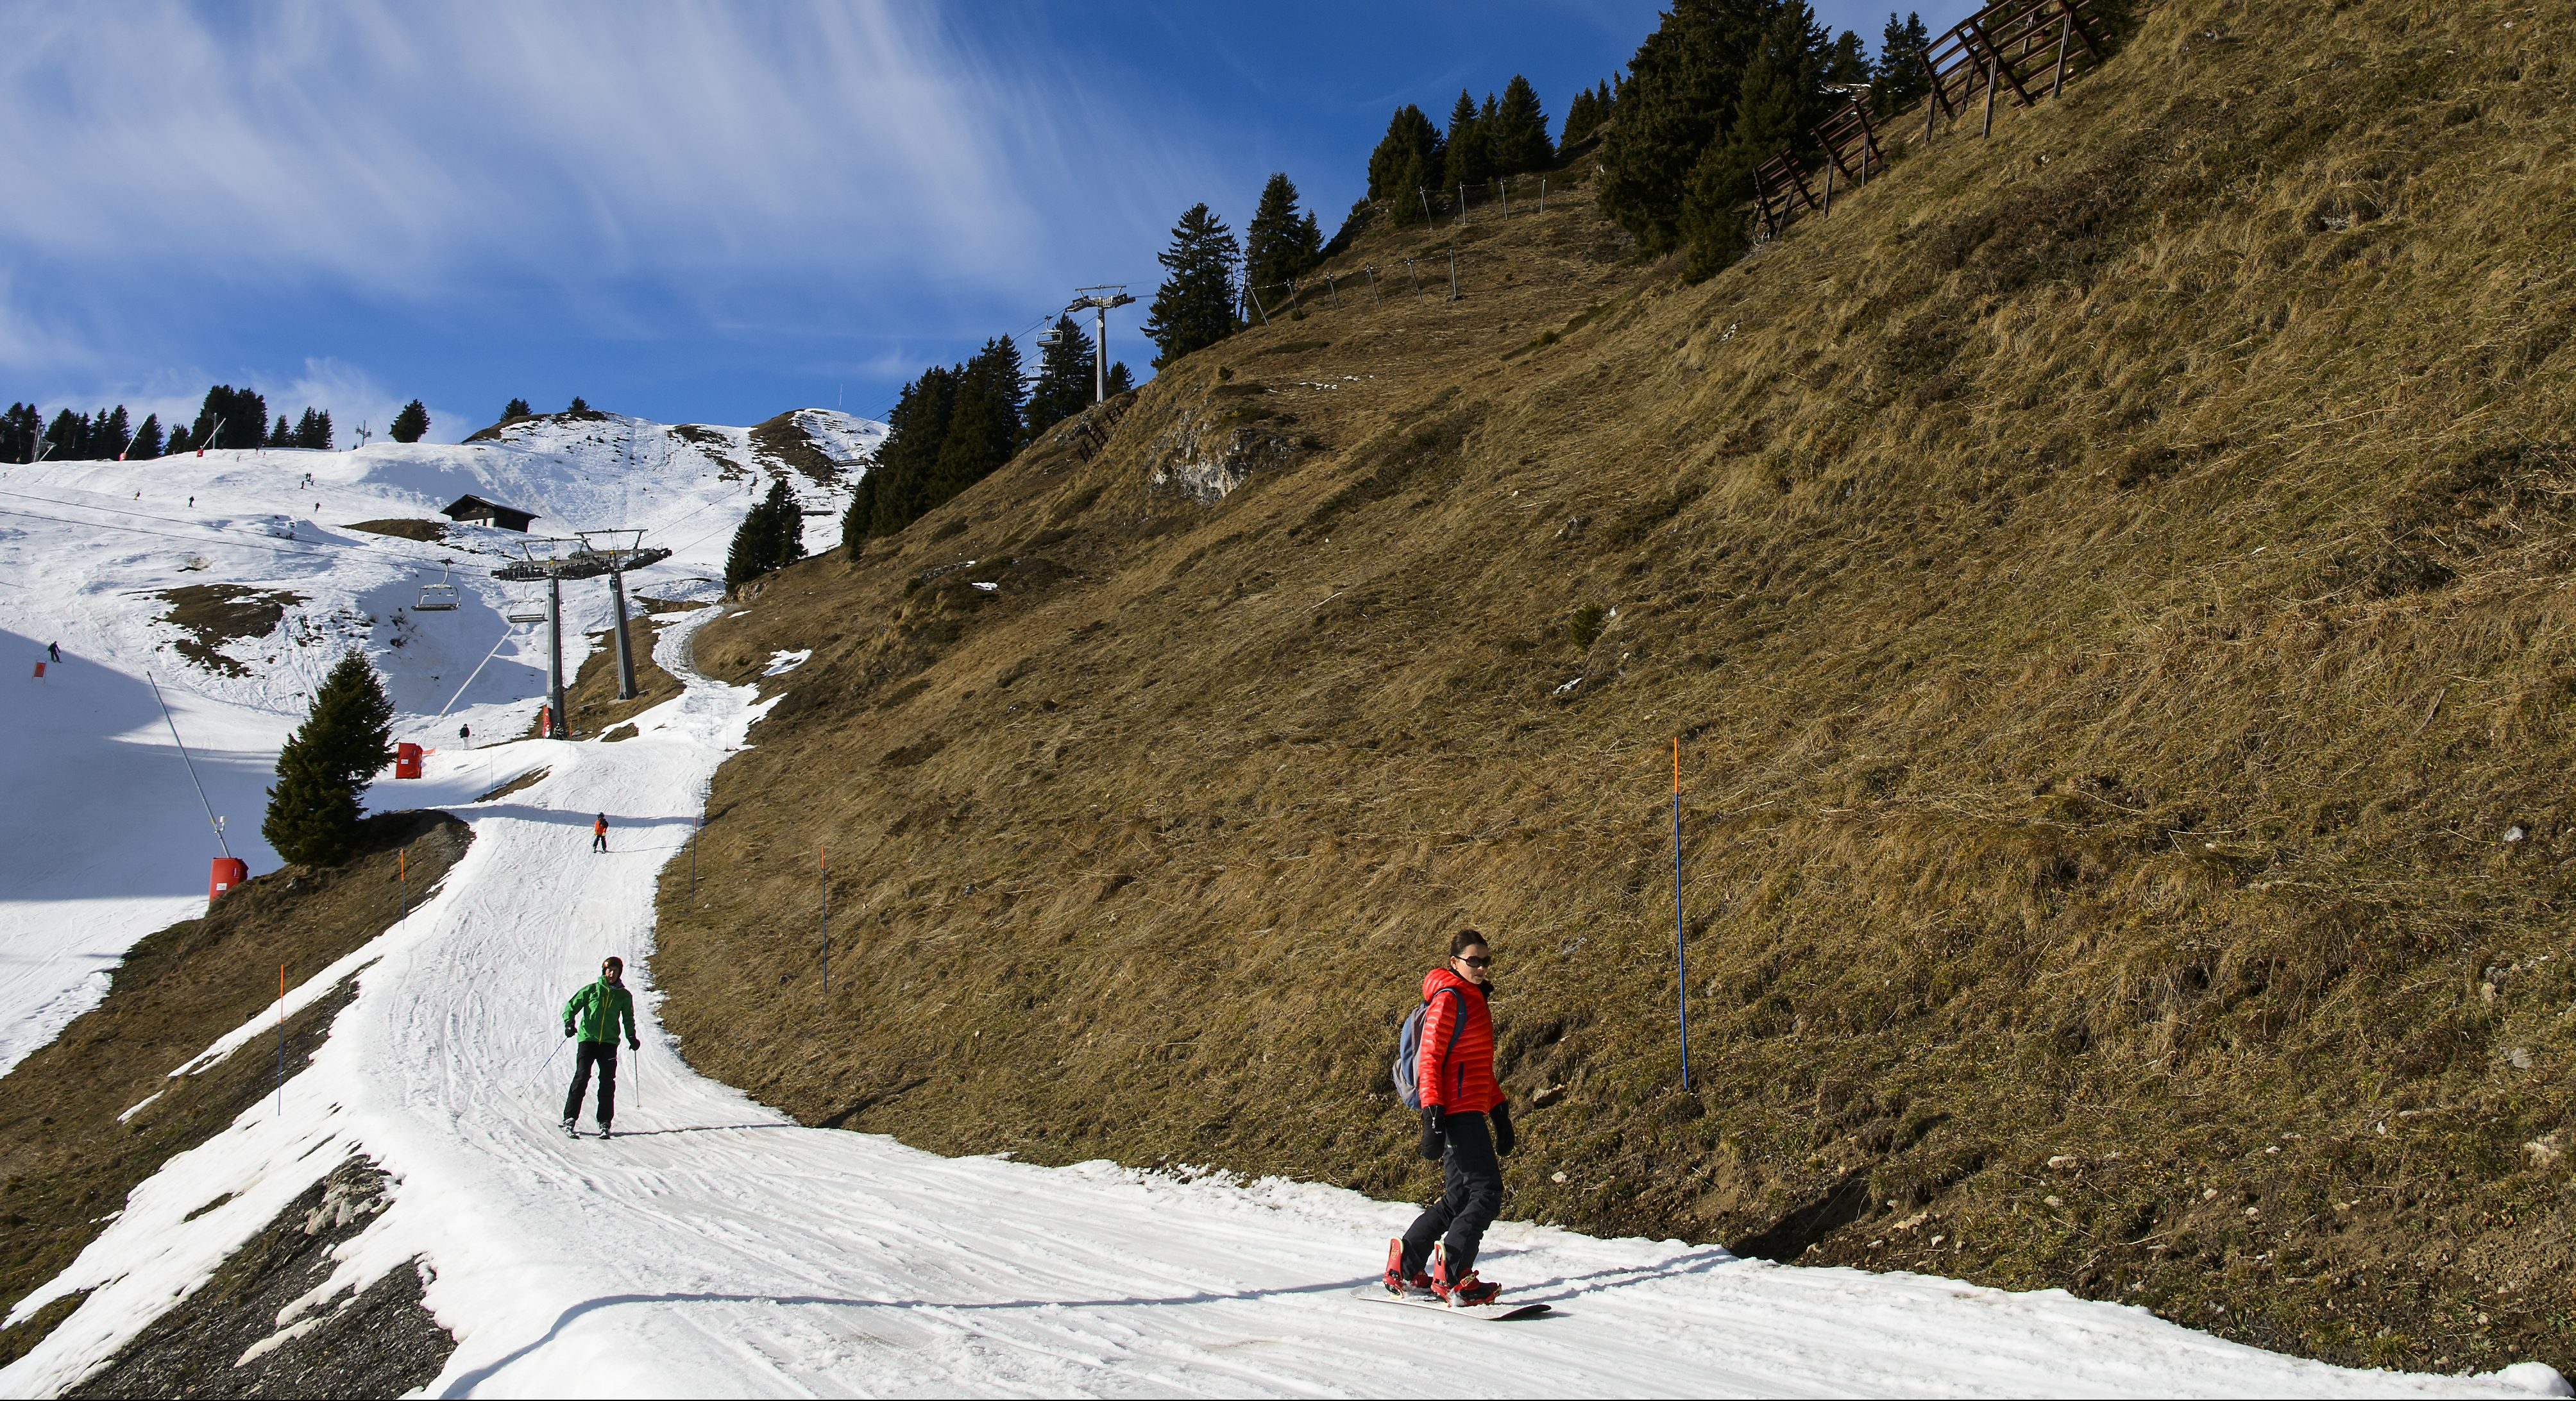 Skiers enjoy the sunny and dry weather at the Villars-Gryon ski resort in Switzerland.